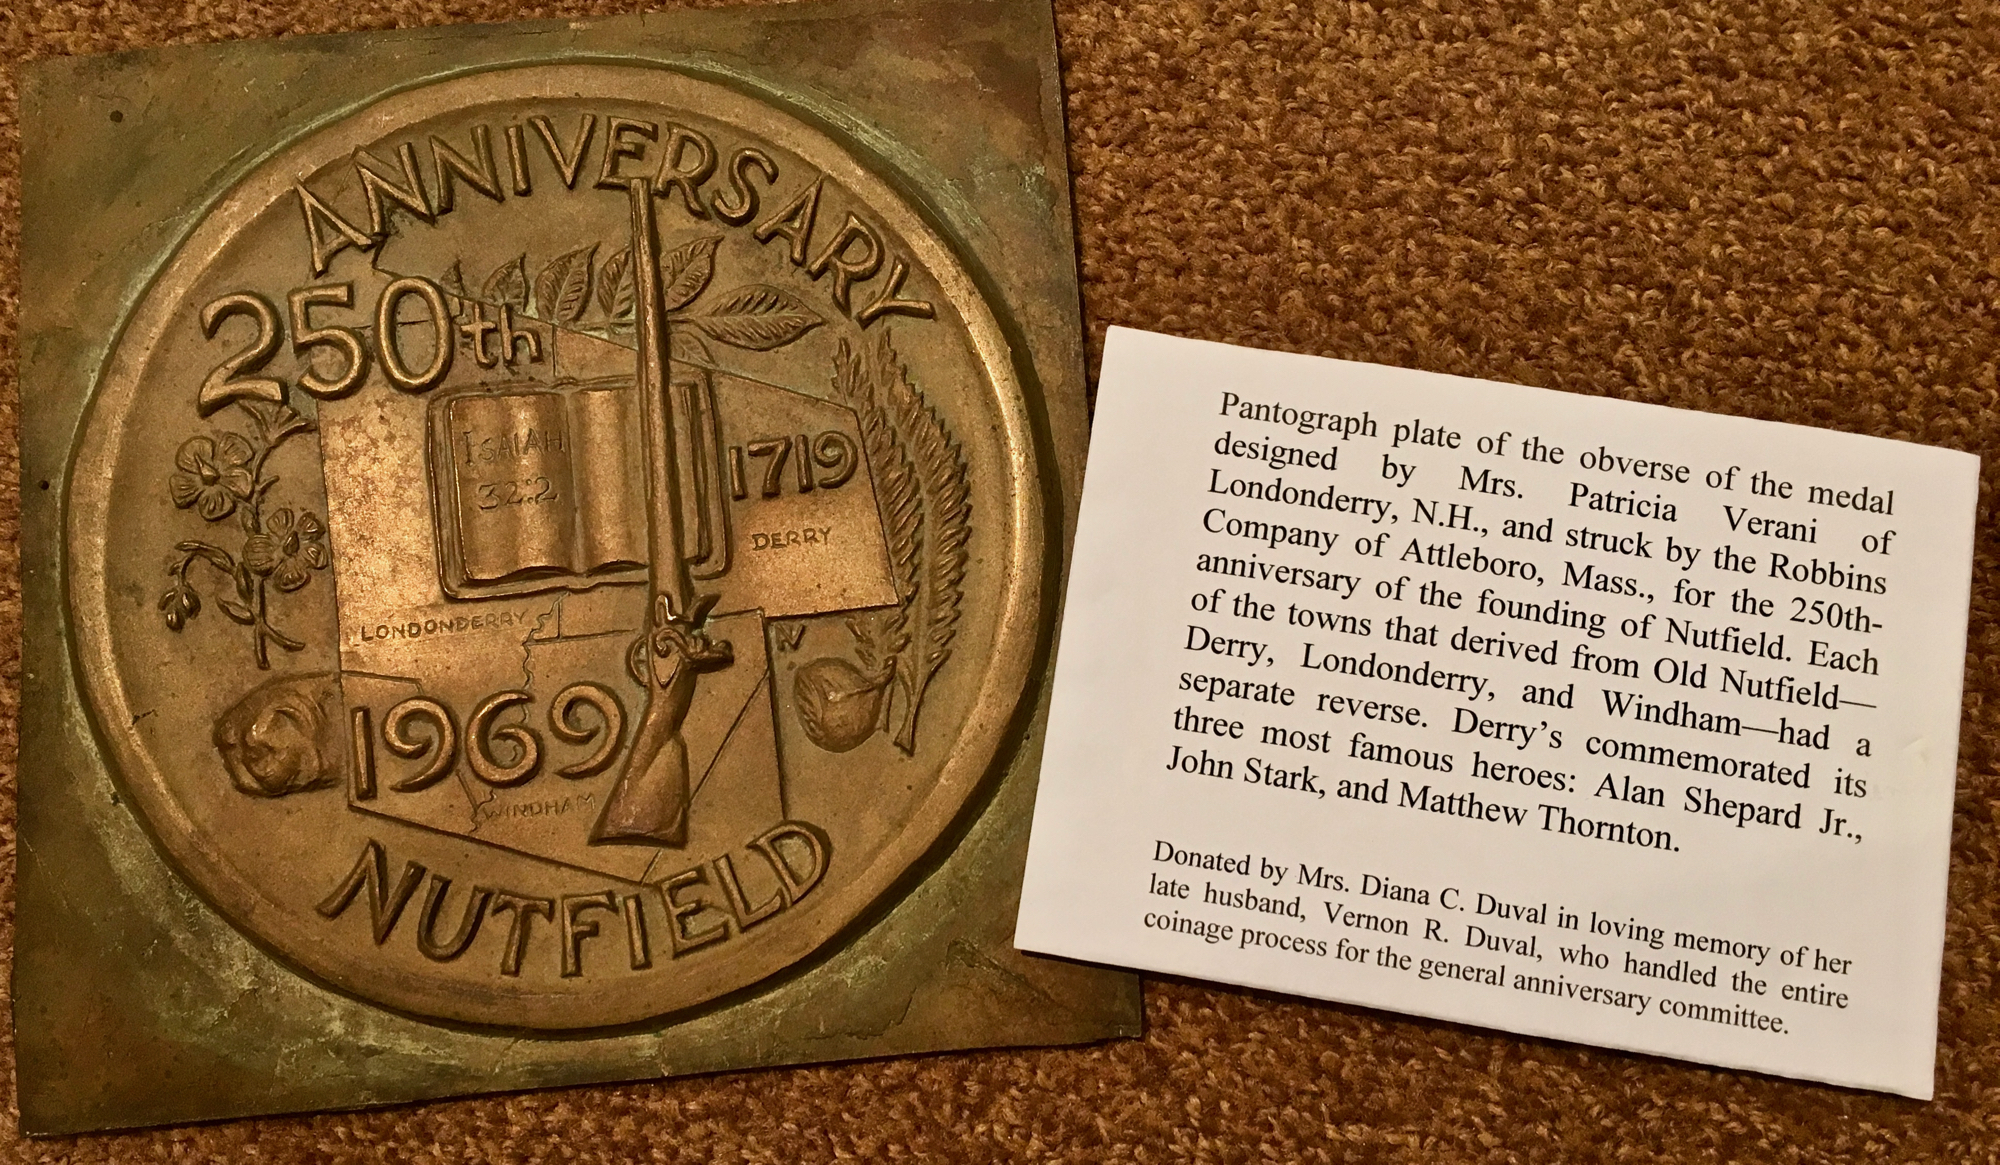 """This 8"""" pantograph plate was used by the medal minter to mechanically trace the 3D artwork design in smaller size to produce the medals. Courtesy of the Derry Museum of History."""